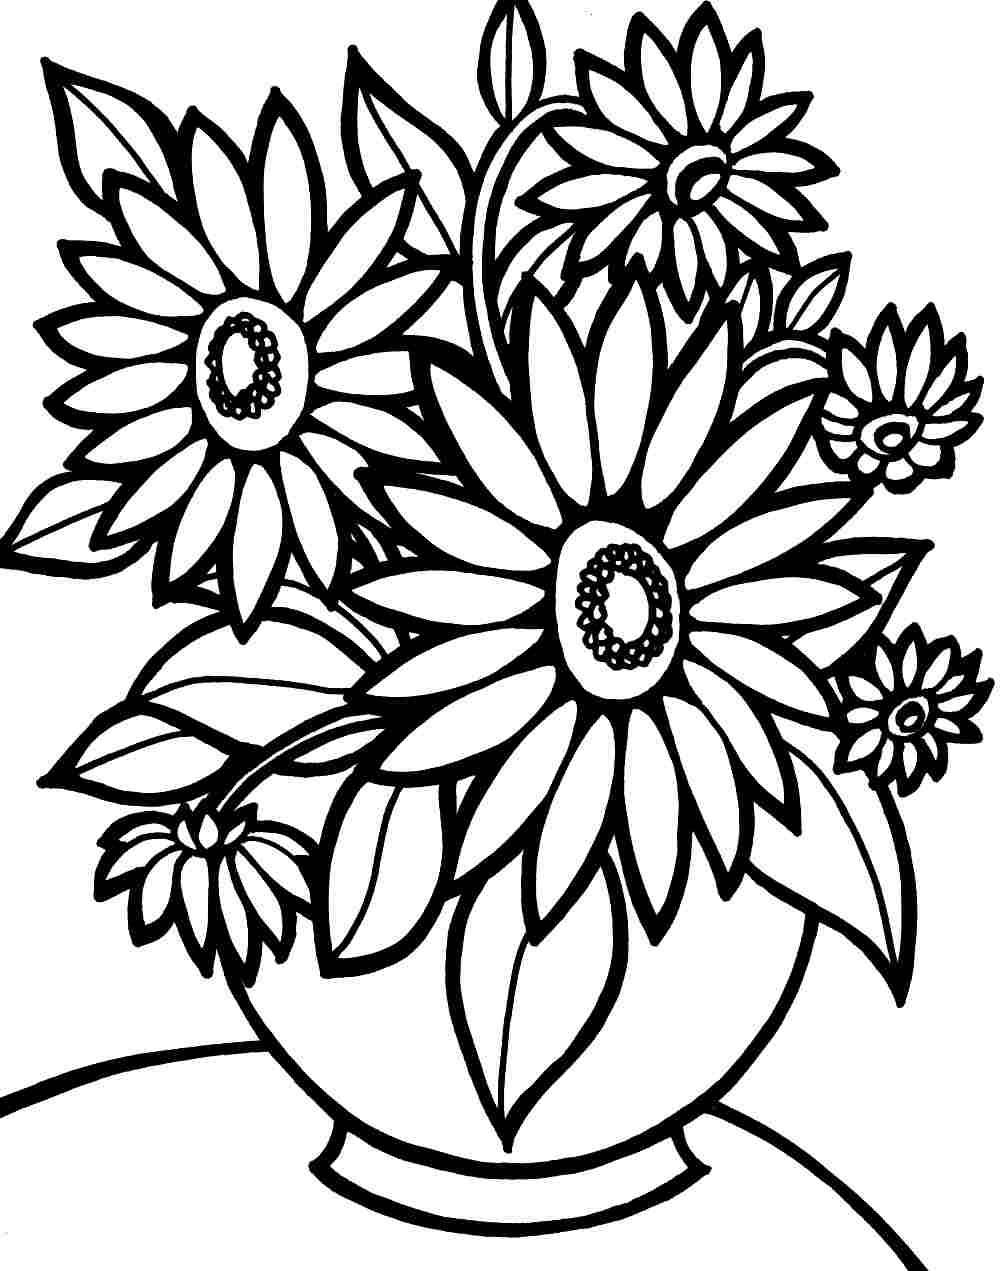 Flower Coloring Pages | Free Download Best Flower Coloring Pages On - Free Printable Flower Coloring Pages